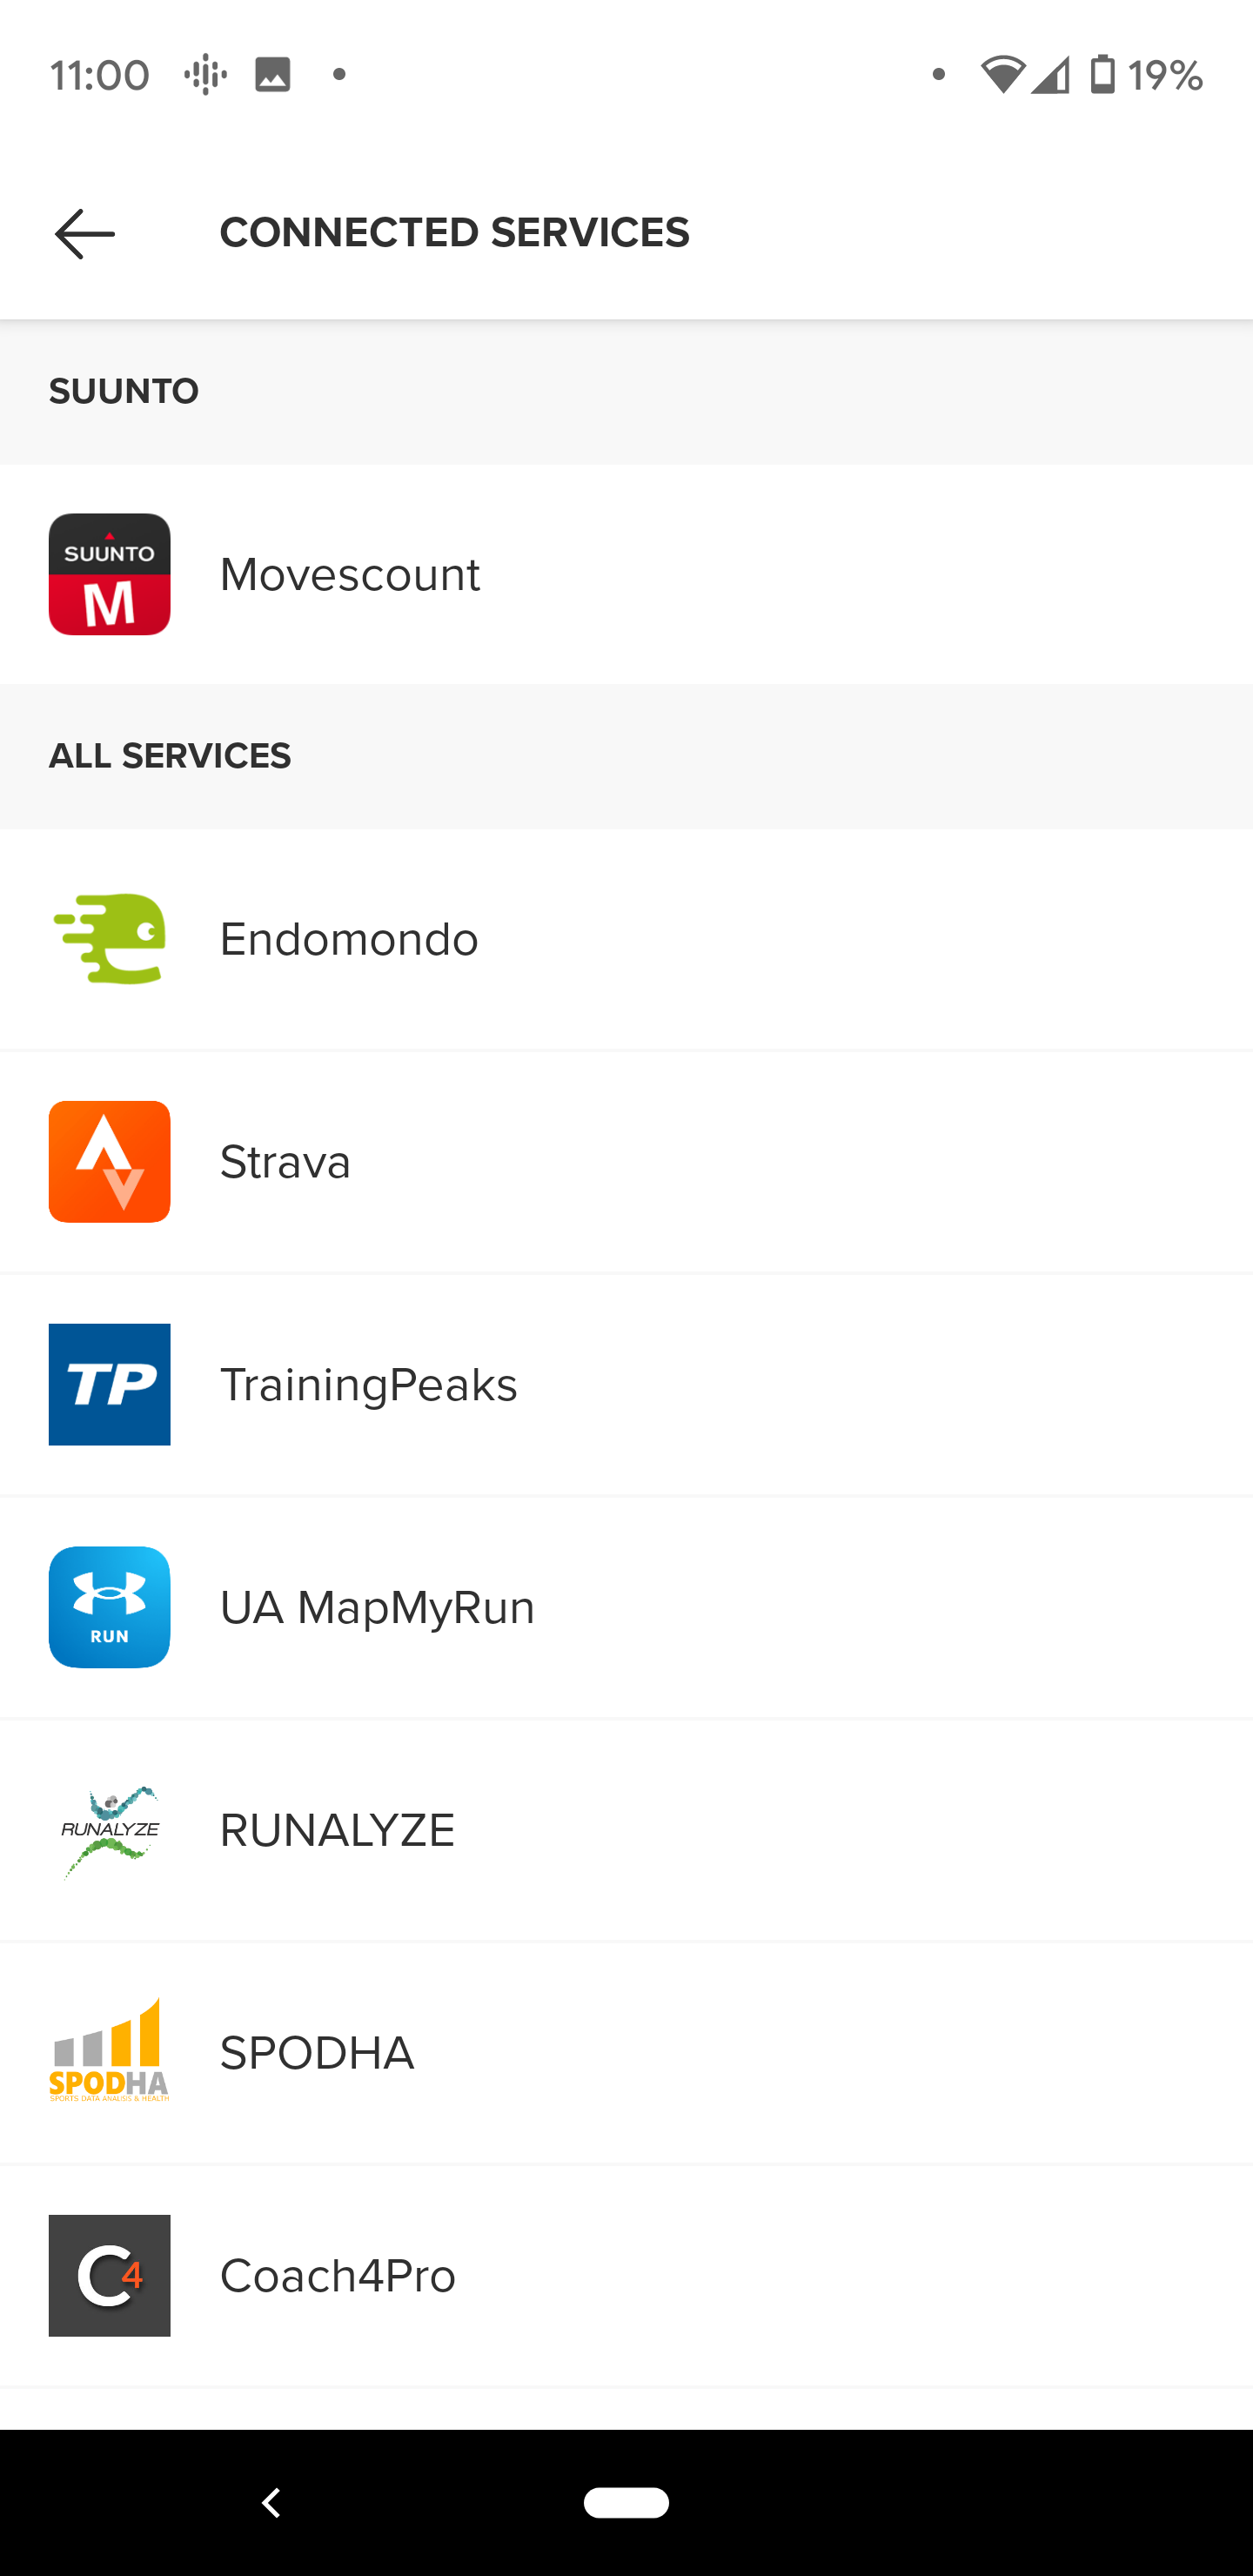 Suunto_Connected_services_AND.png